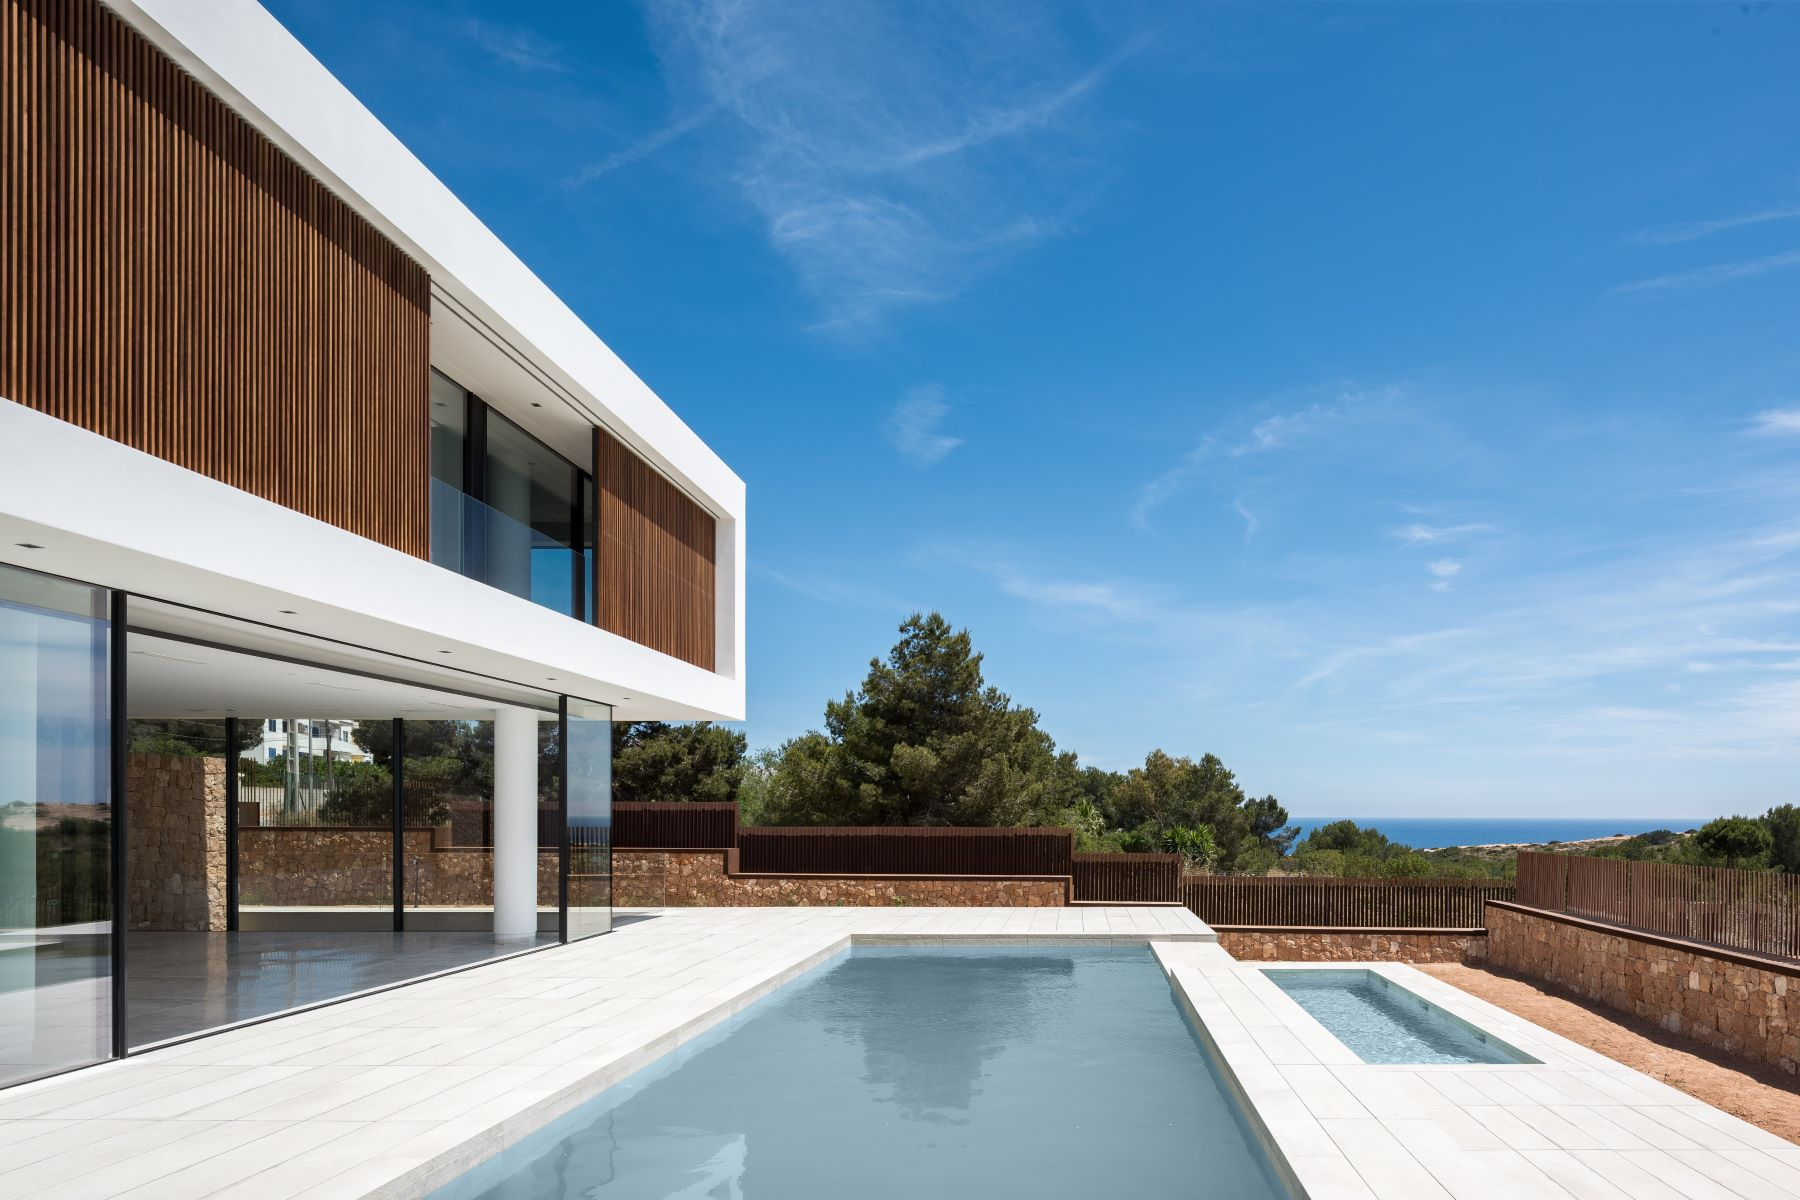 Maison unifamiliale pour l à vendre à Luxury New Built property With Sea View Ibiza, Ibiza, 07800 Espagne